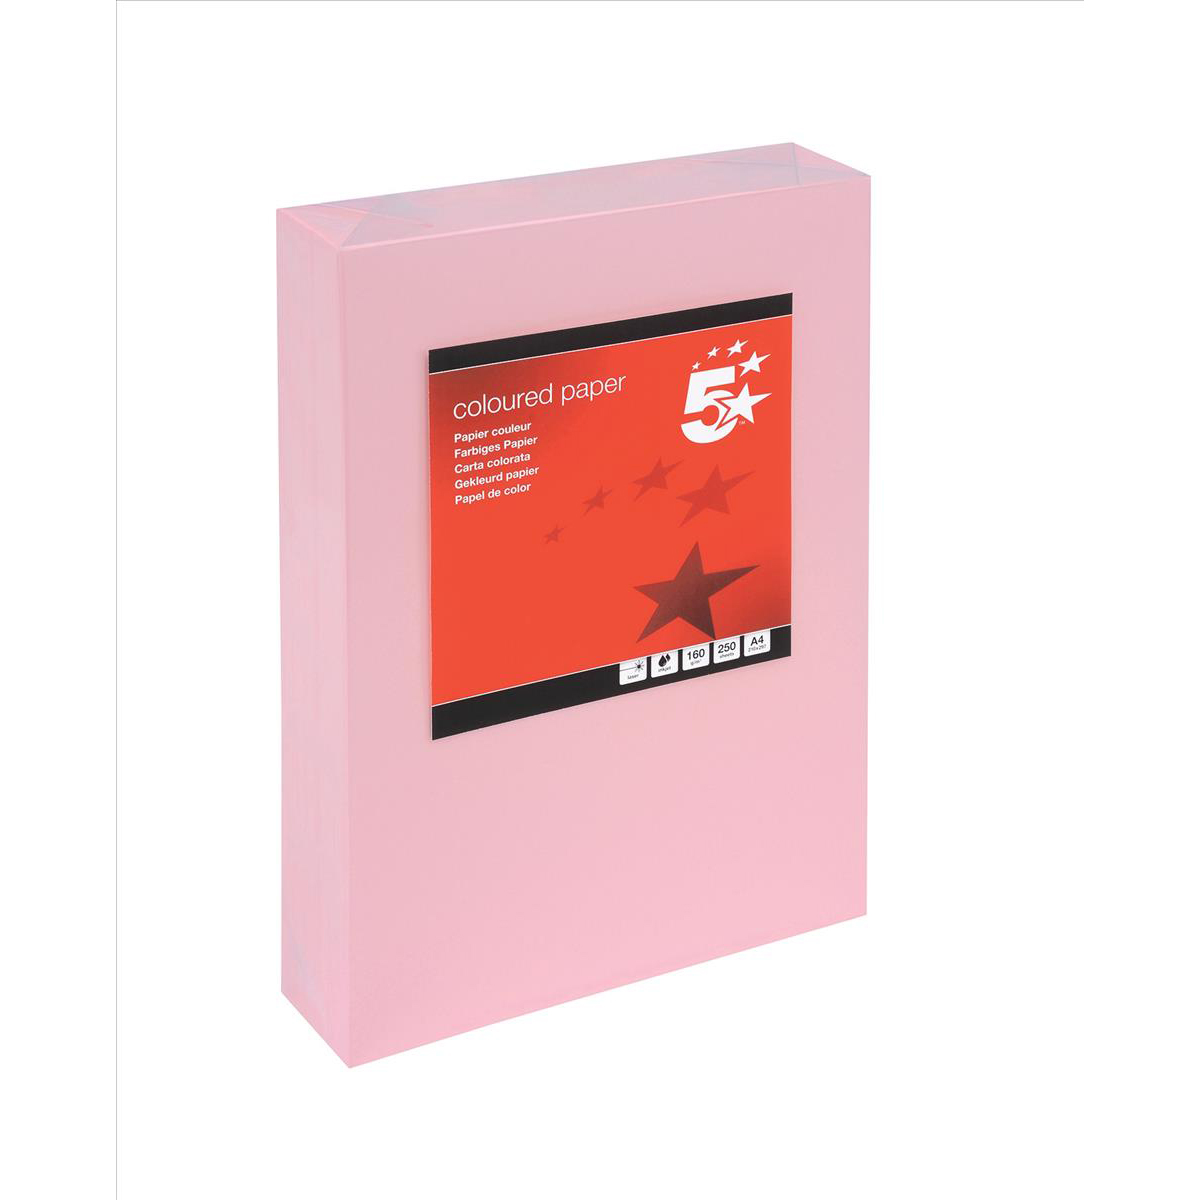 Card (160g+) 5 Star Office Coloured Card Multifunctional 160gsm A4 Light Pink 250 Sheets